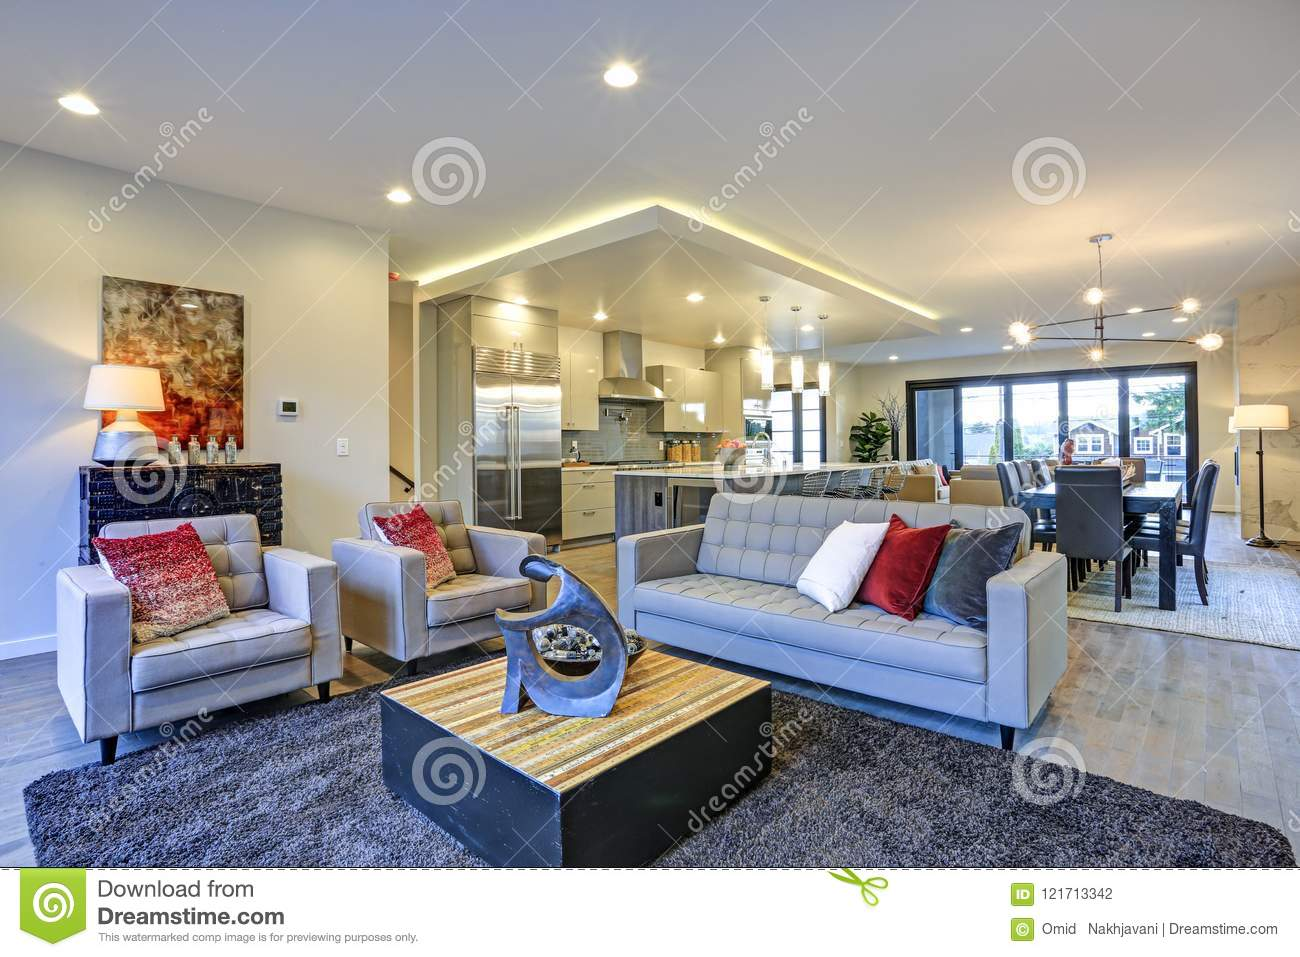 White And Gray Living Room Interior With Open Floor Plan